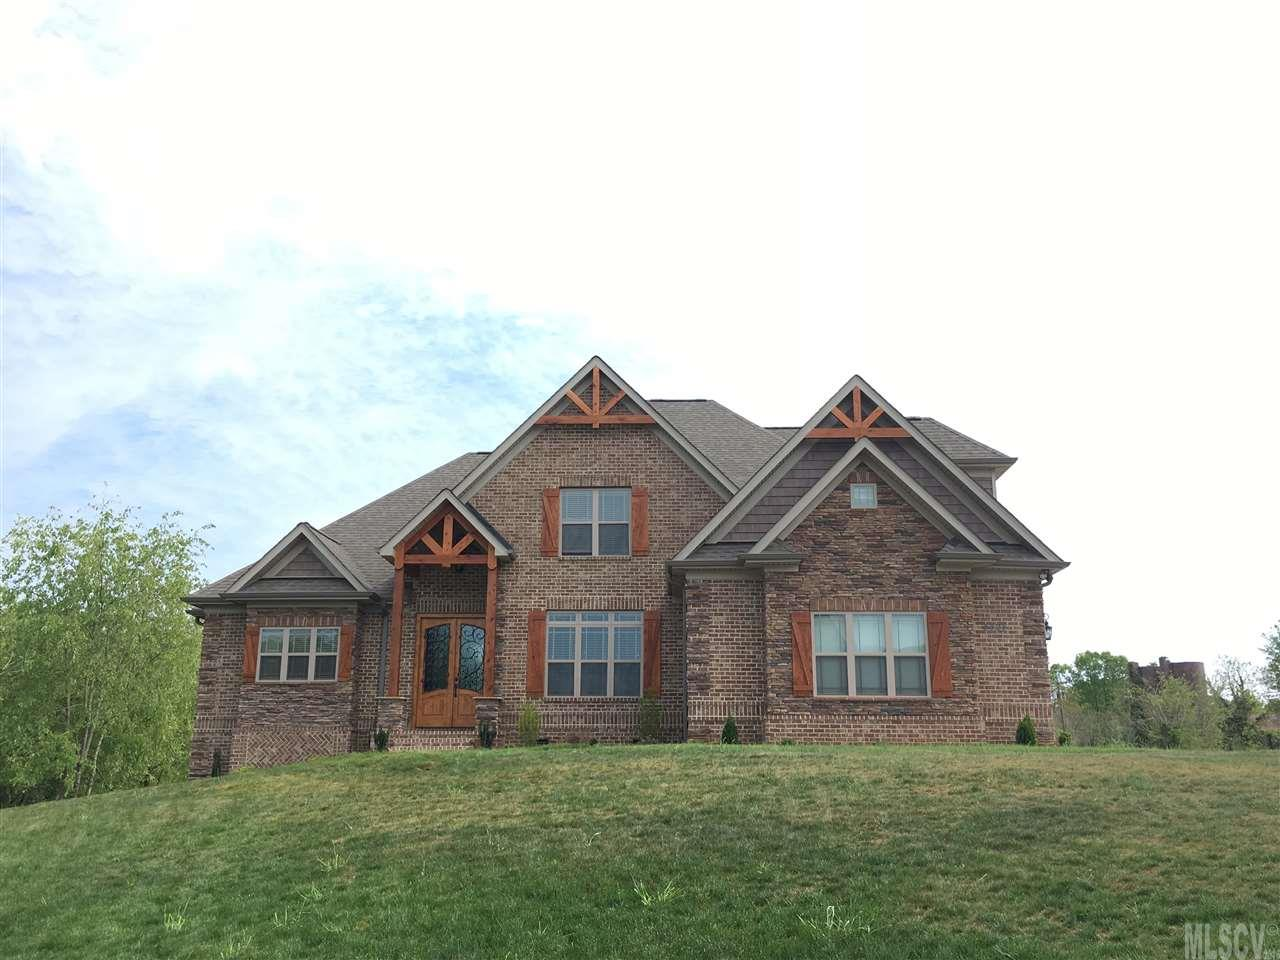 4424 1st Street Dr NW, Hickory, NC 28601